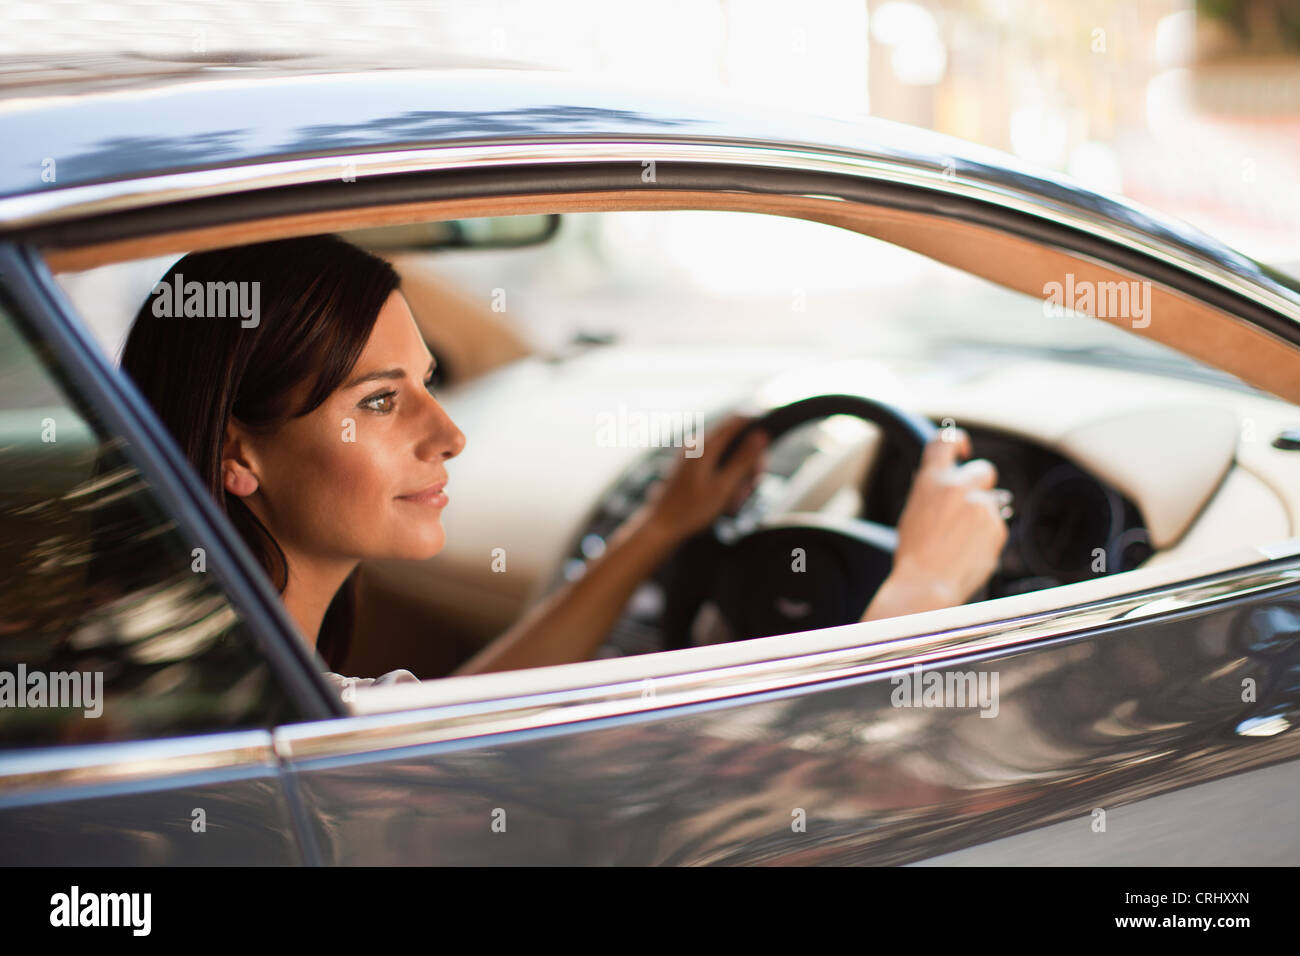 Smiling woman driving sports car - Stock Image